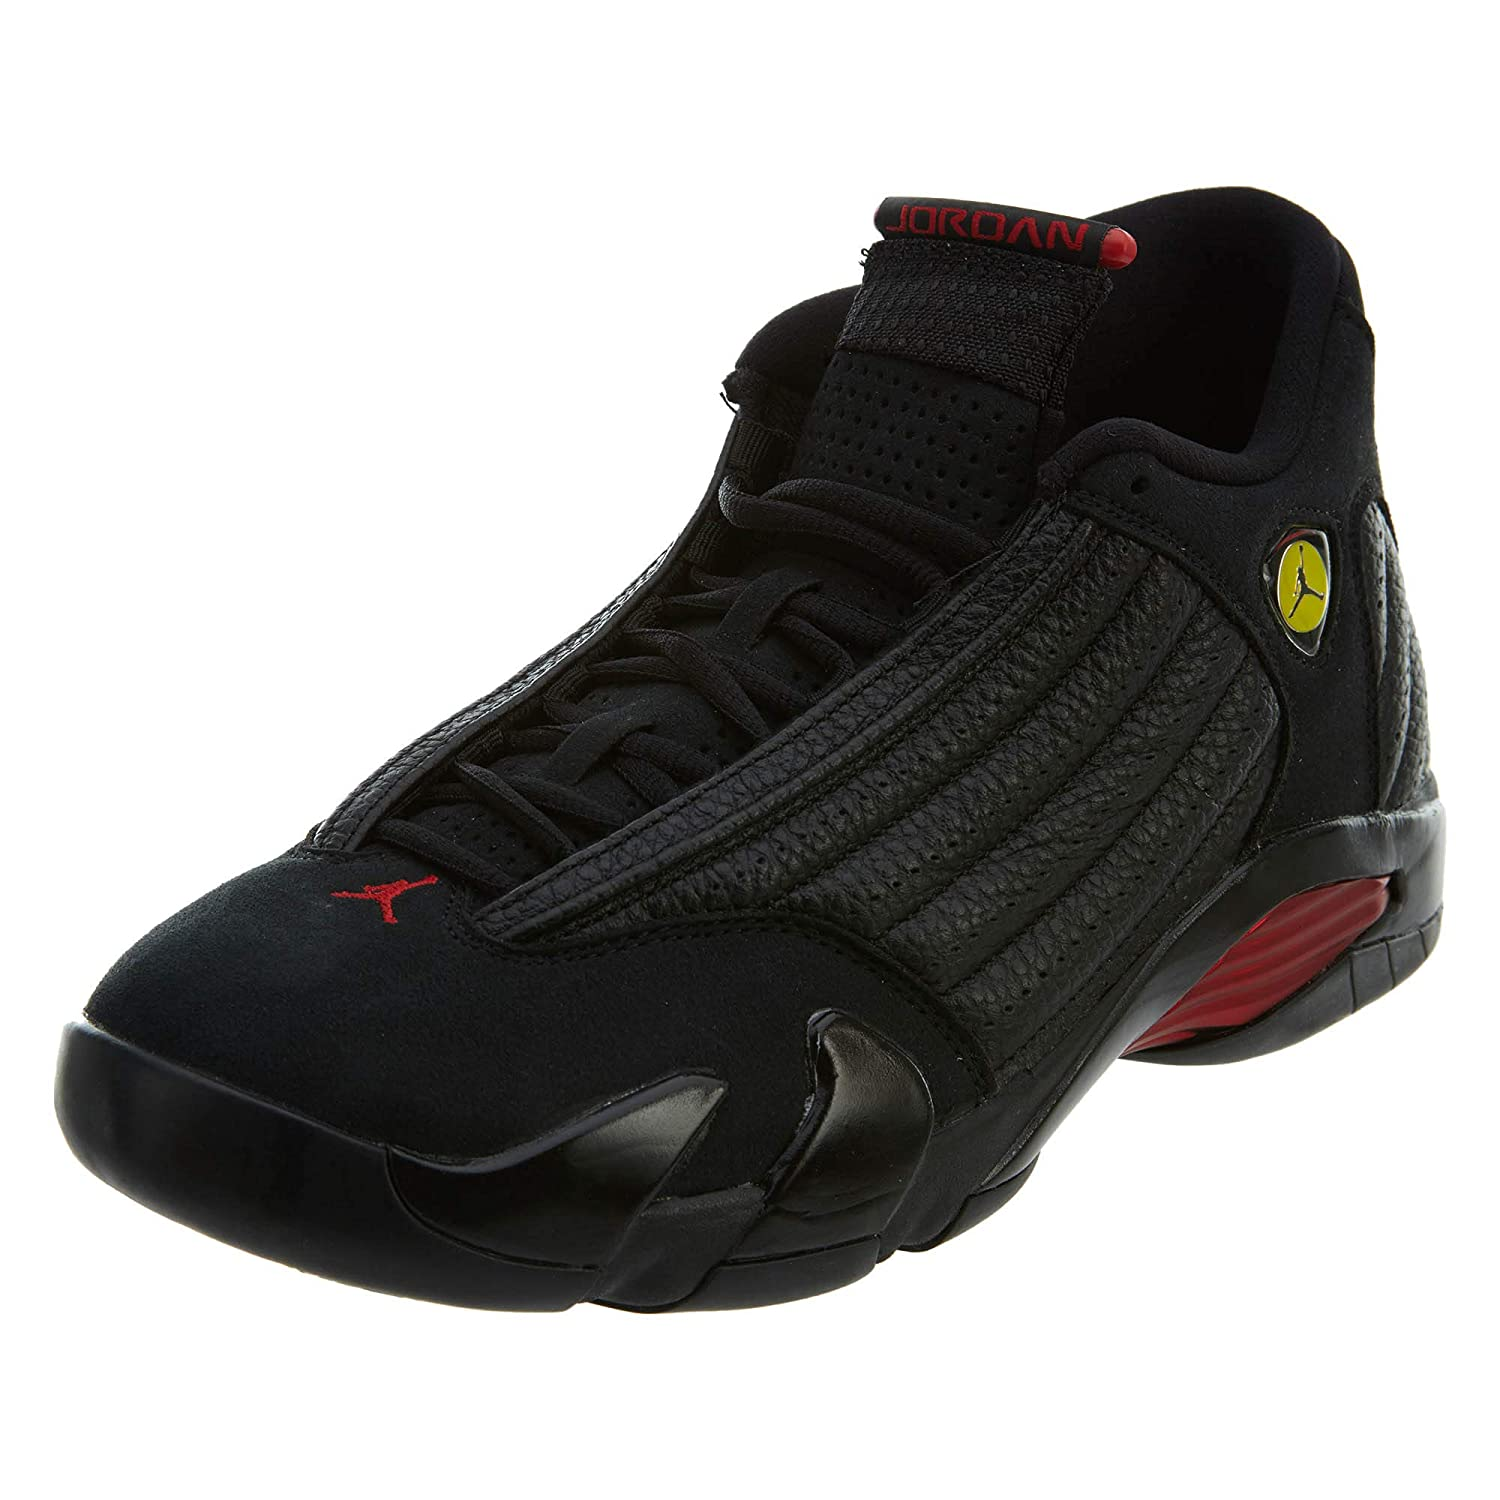 2080c8080f5 Shoes Man Sneaker AIR Jordan Last Shot in Black Leather 487471-003:  Amazon.co.uk: Shoes & Bags